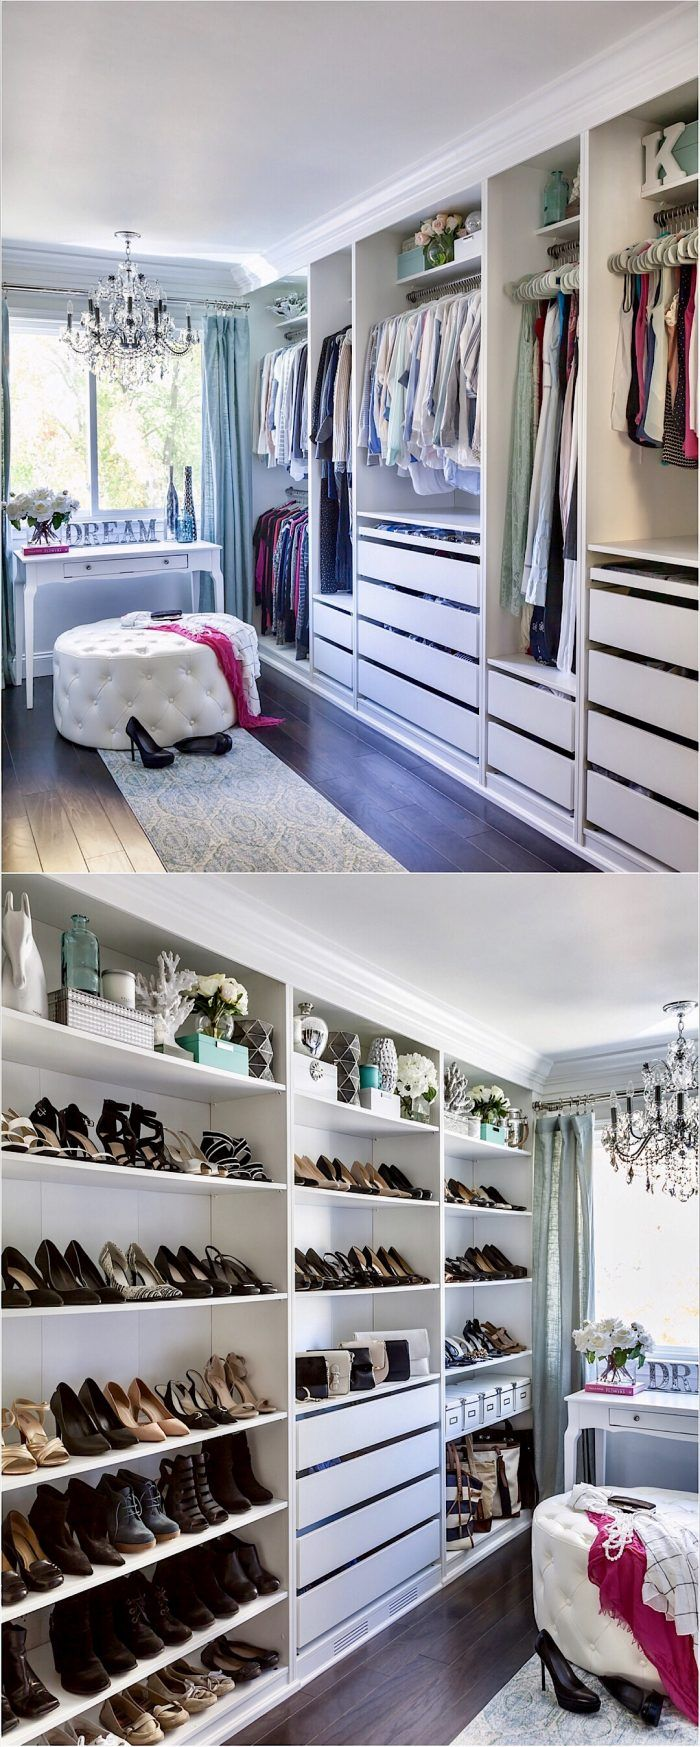 Living Room Closet Design Mesmerizing Closet Design Katerumson Design Inspiration